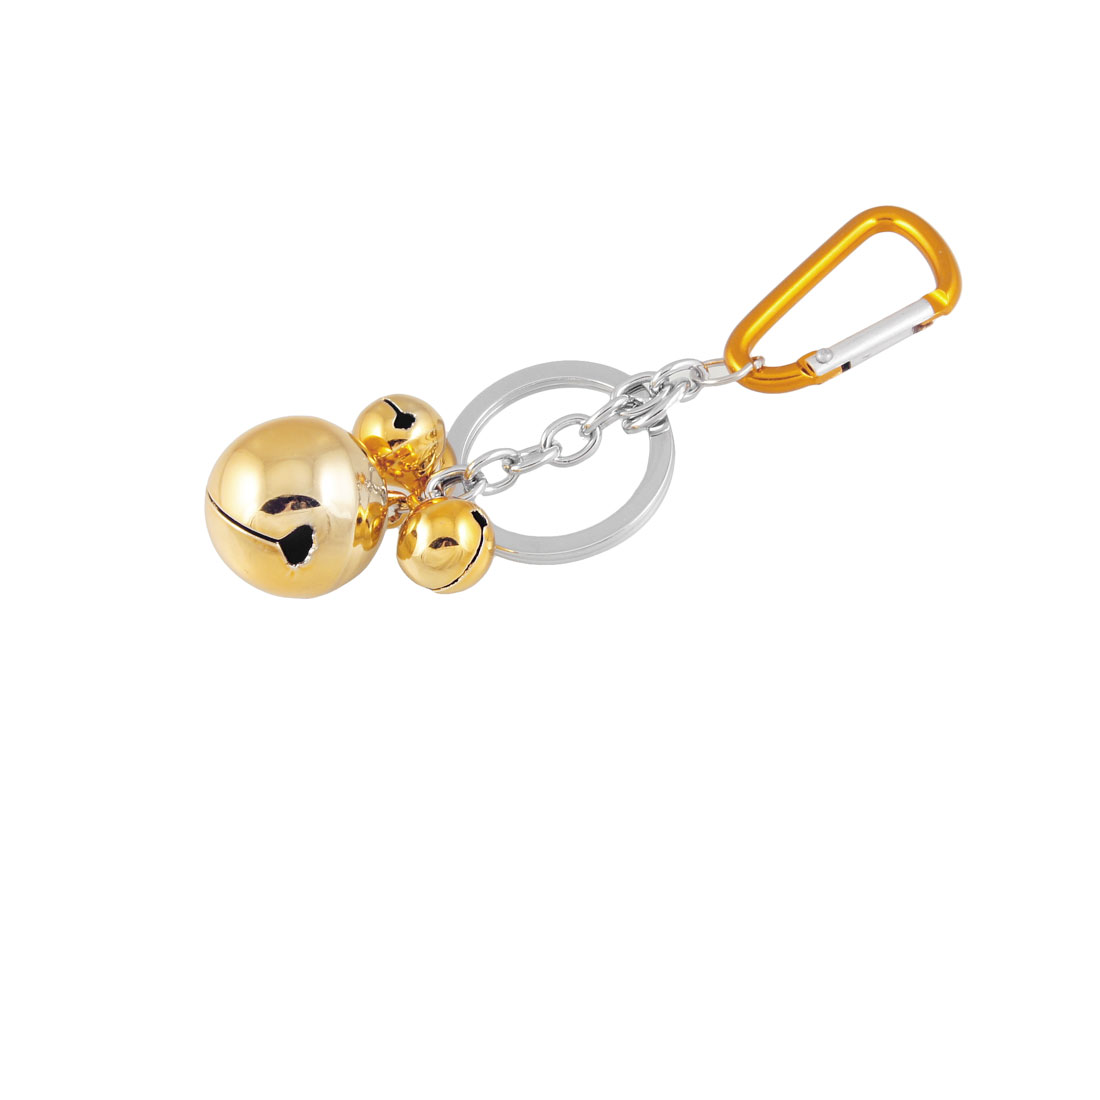 Gold Tone 3 Bells Pendant Decor Mini Carabiner Hook Key Chain Keyring